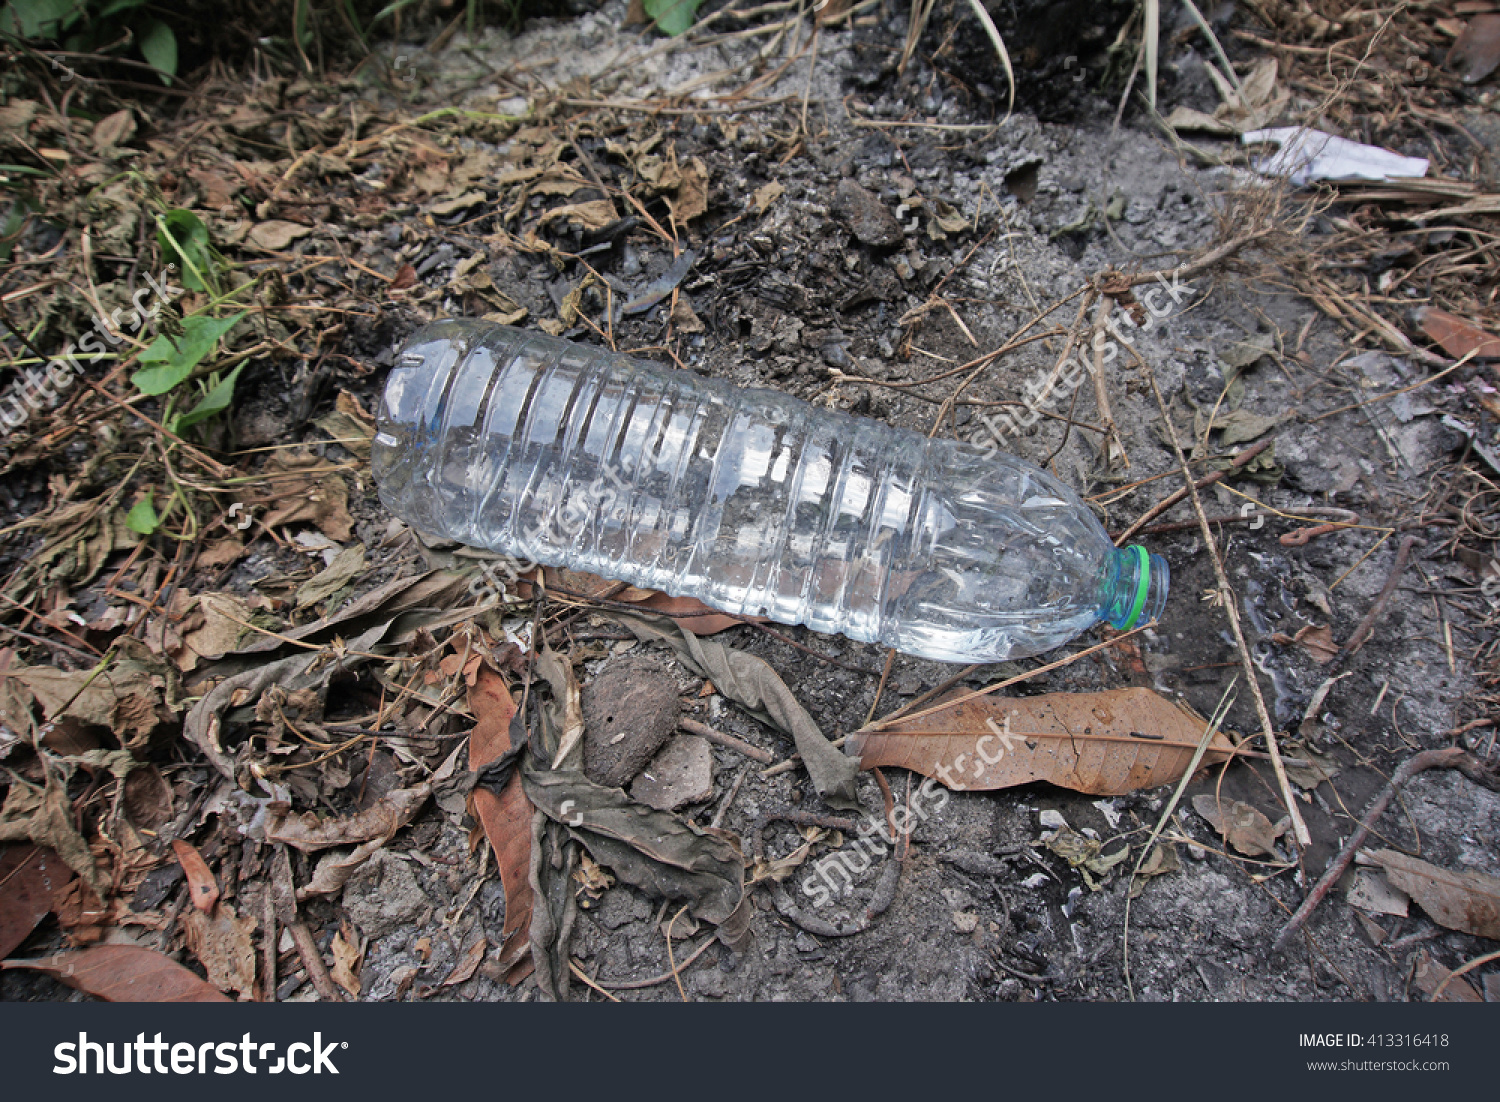 Plastic Water Bottle Left Stores Stagnant Stock Photo 413316418.